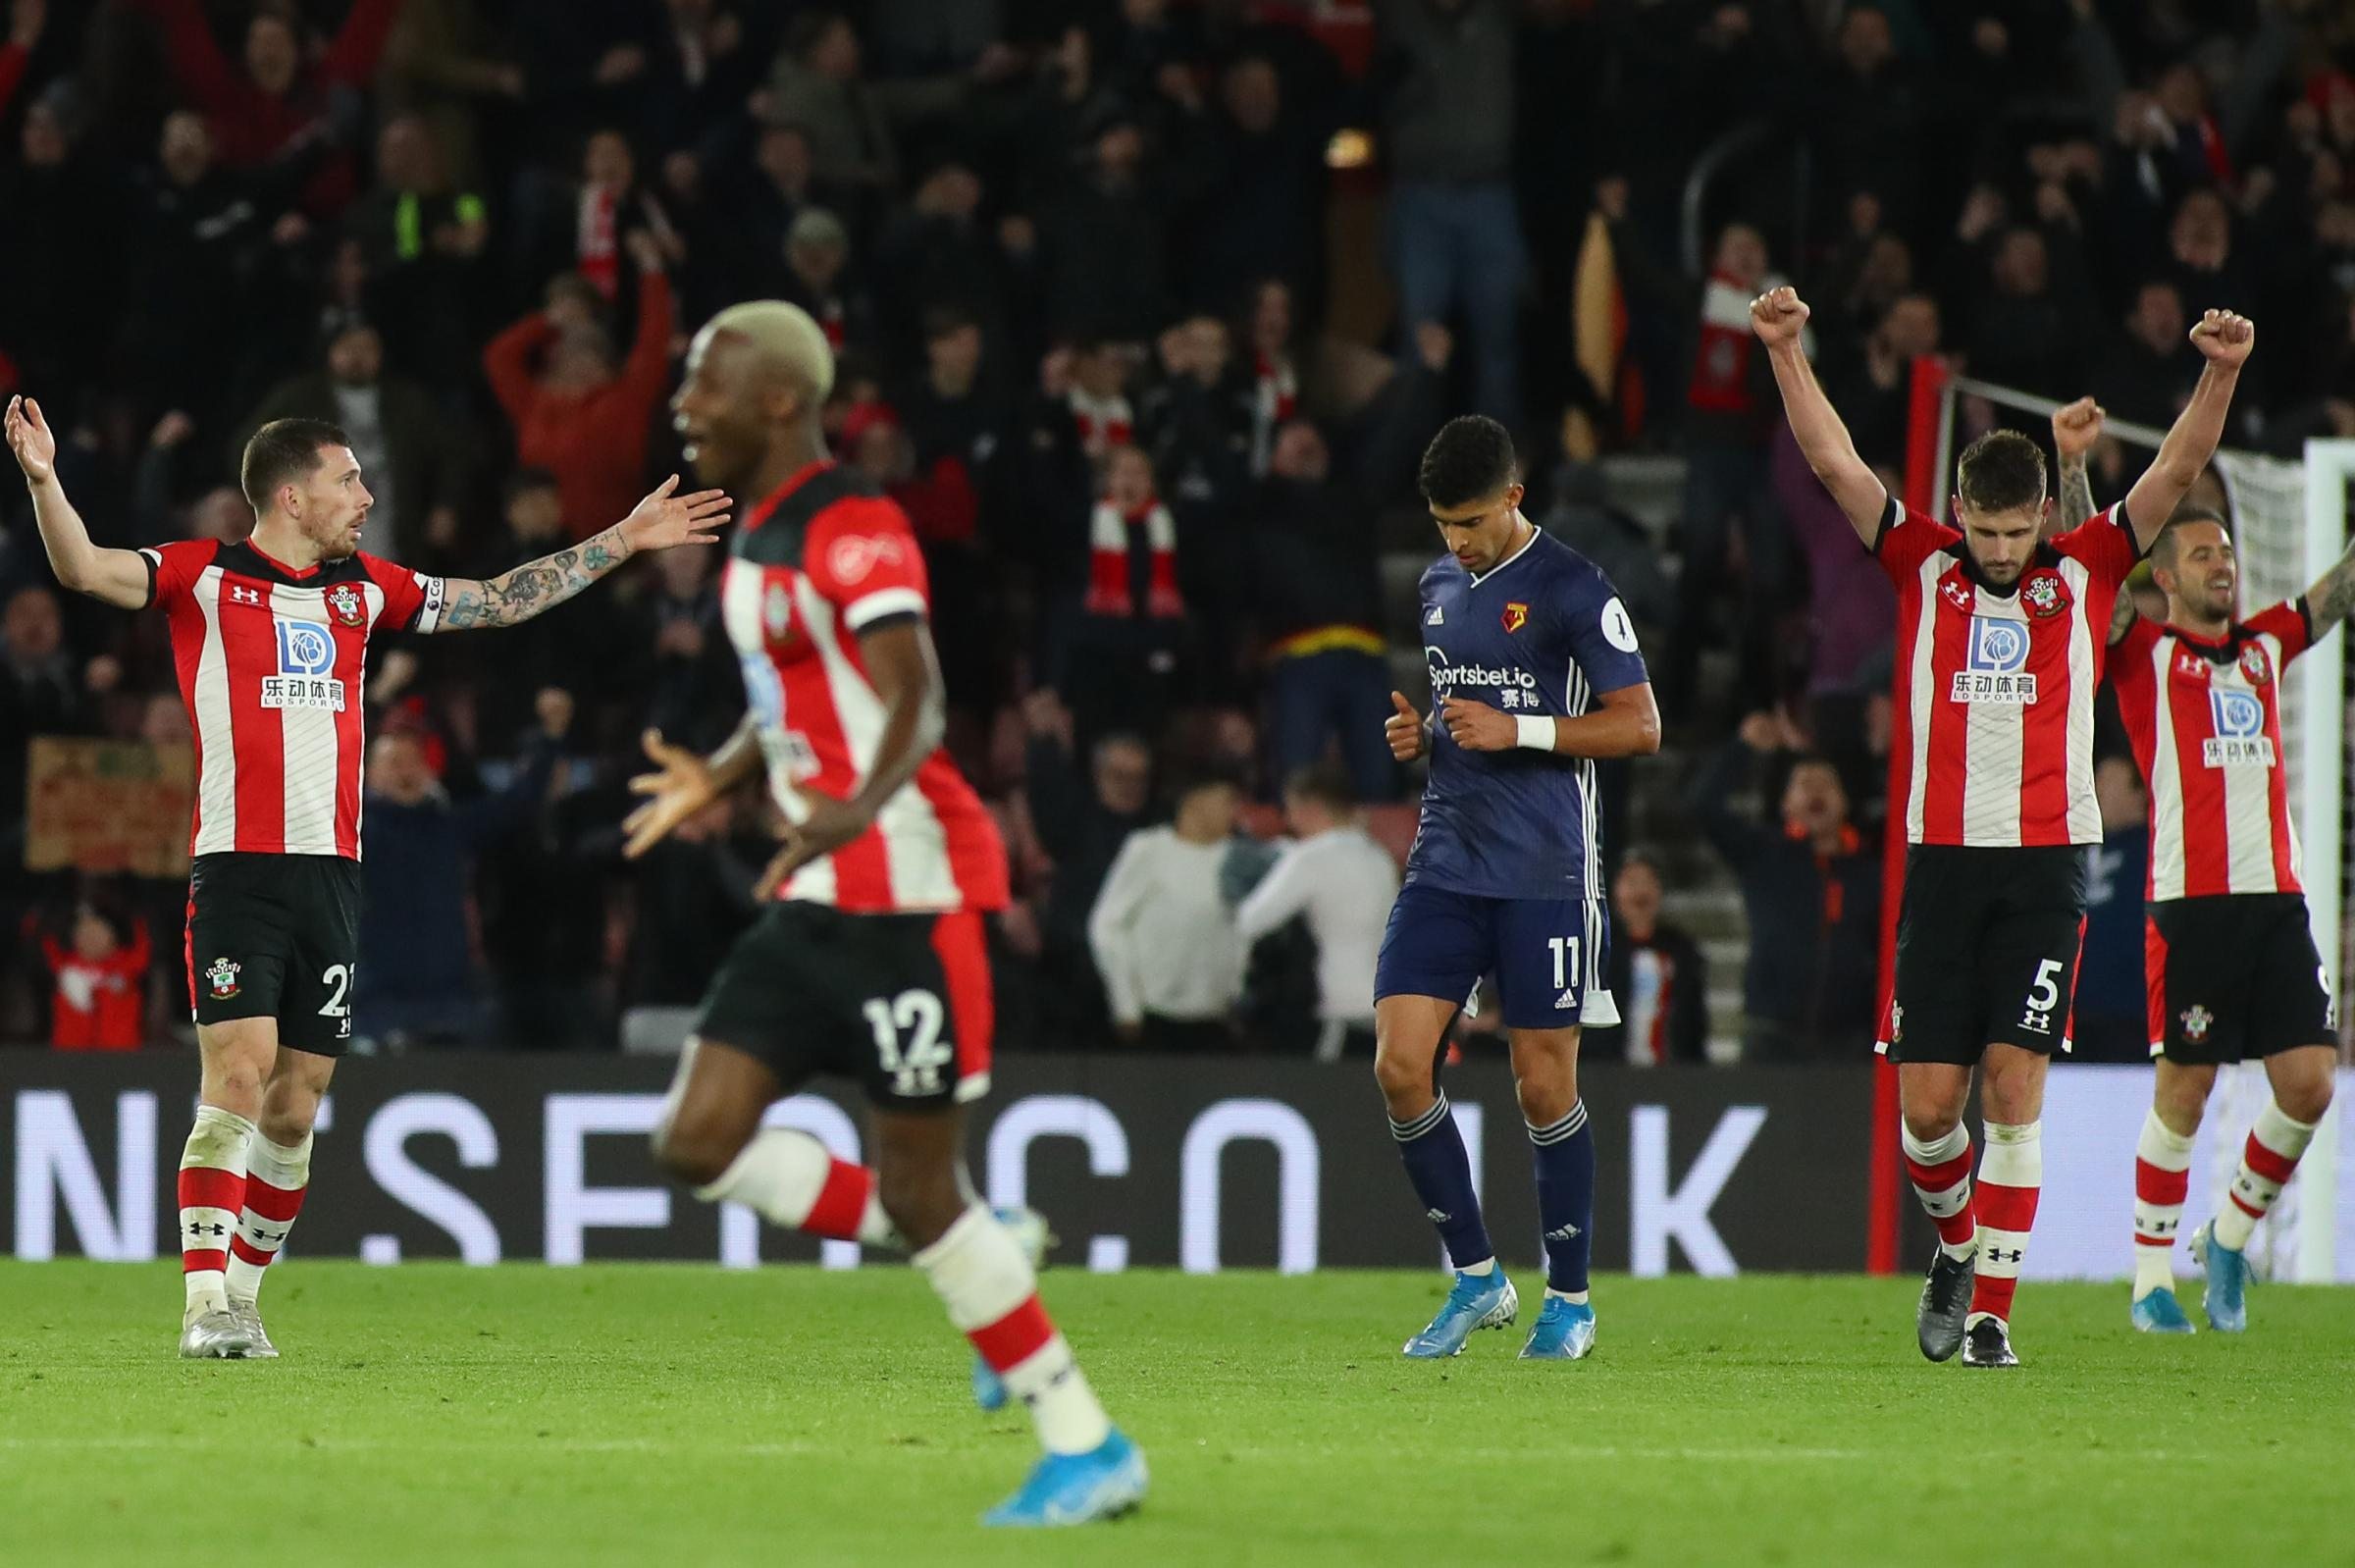 Southampton have given fans an early Christmas present